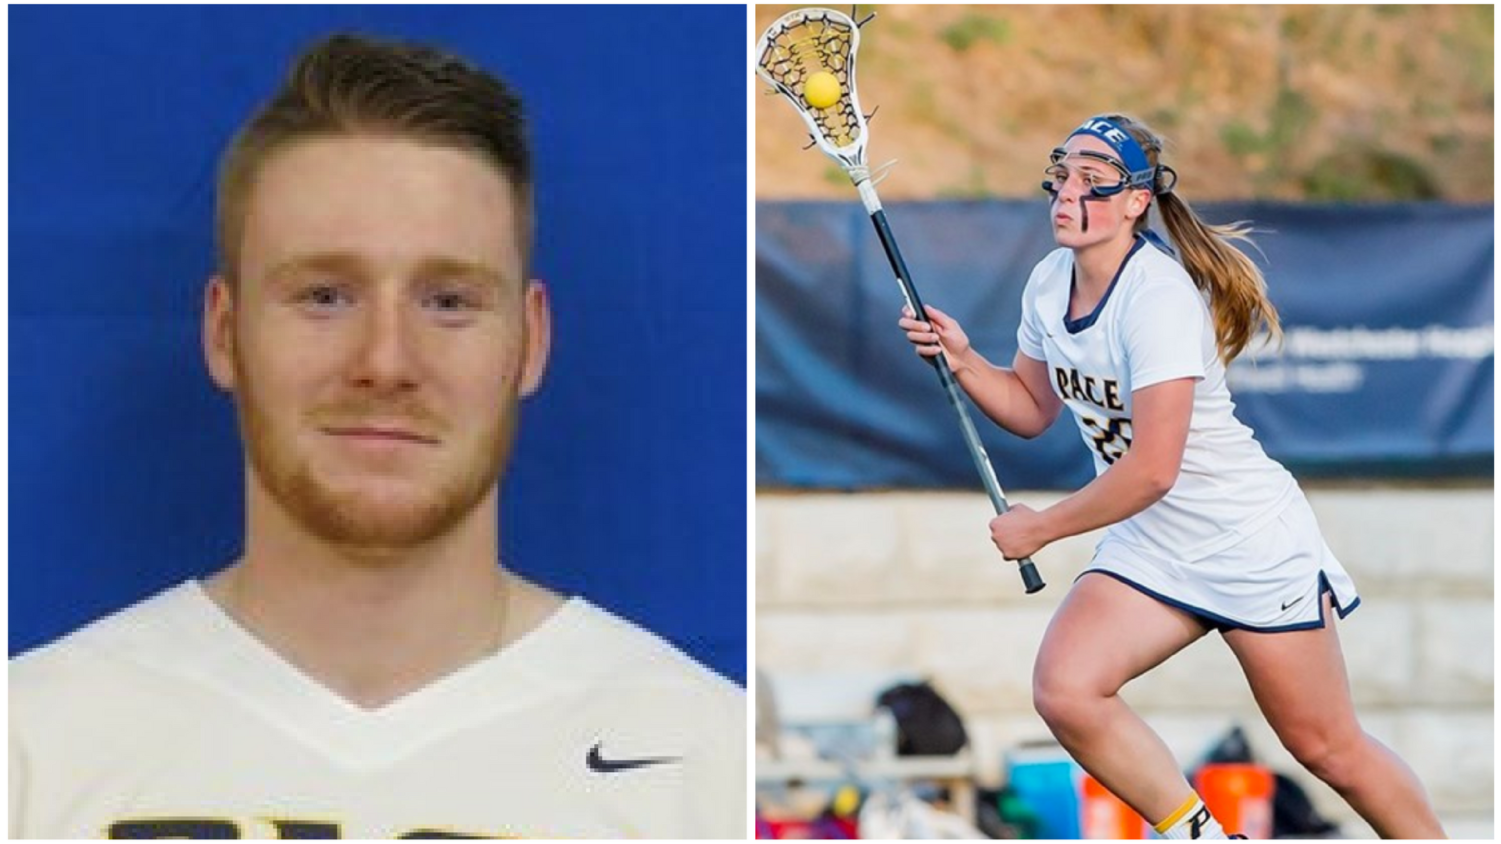 Men's lacrosse captain Wyatt Barfoot and Women's lacrosse captain Casey Gelderman discuss their duties as team captains. Photo Courtesy of Pace U Athletics.